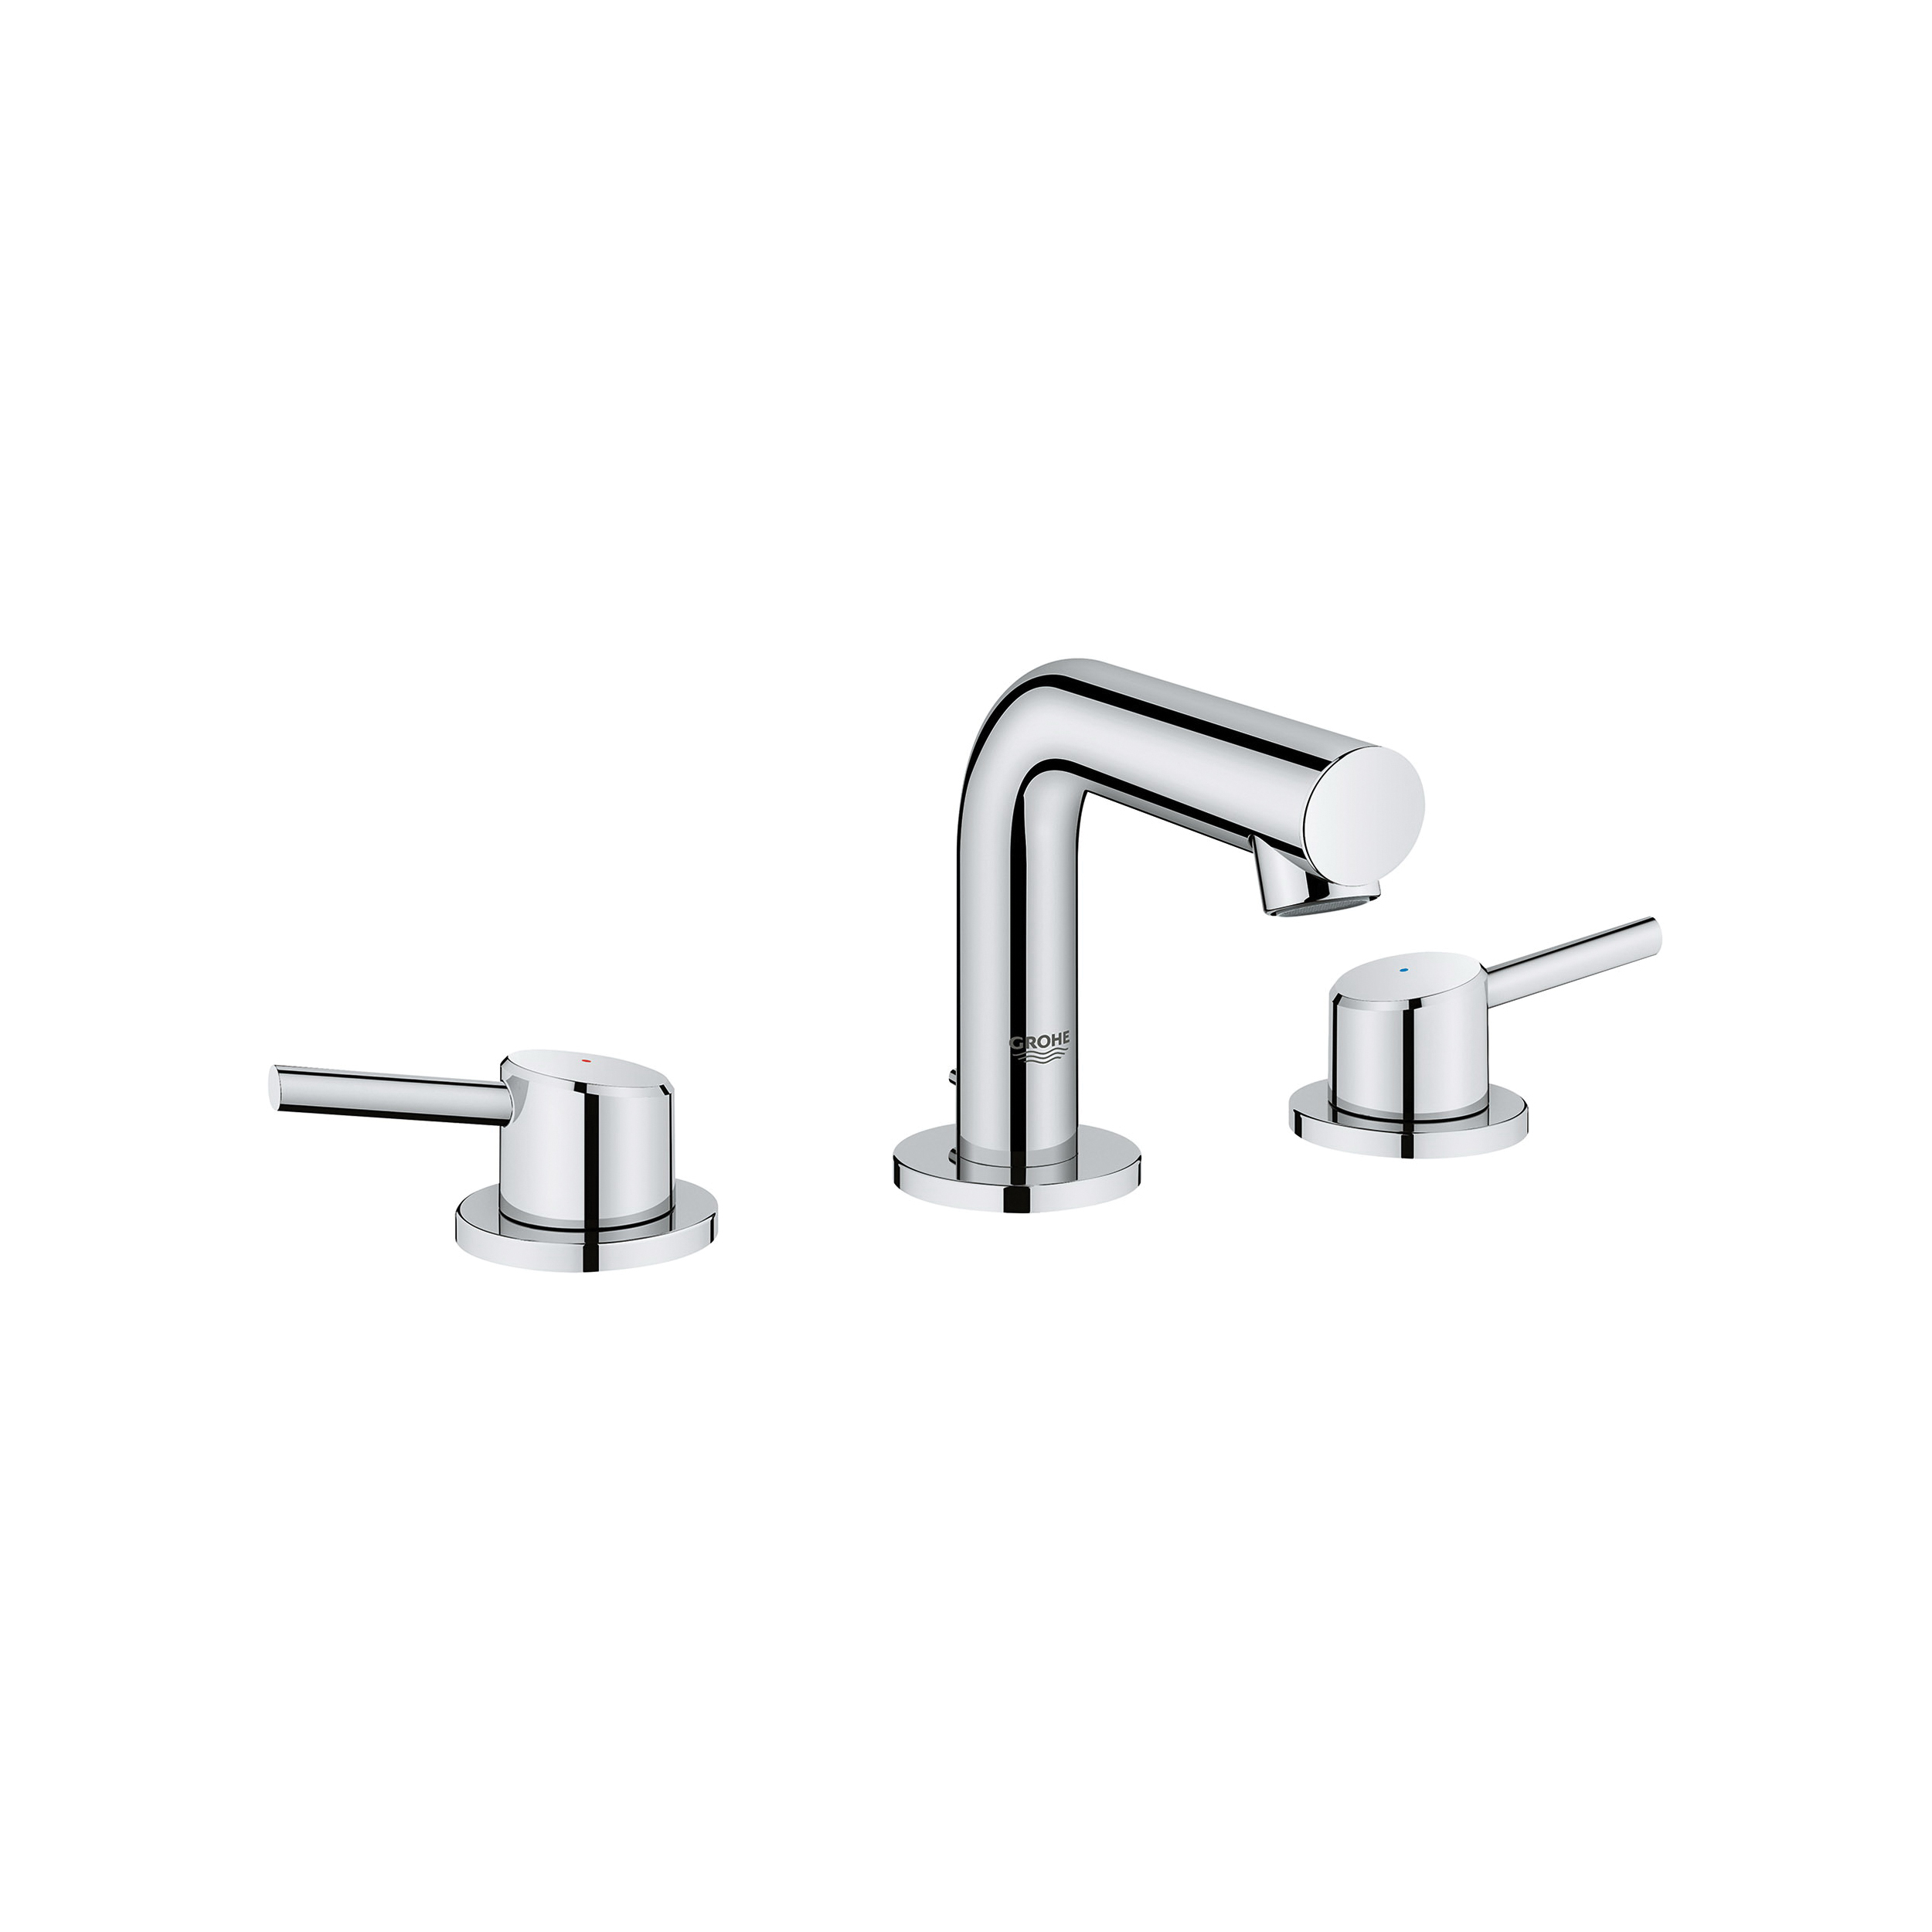 GROHE 20572001 Concetto Widespread Bathroom Faucet, 2.2 gpm, 3-3/8 in H Spout, 8 in Center, StarLight® Chrome, 2 Handles, Pop-Up Drain, Import